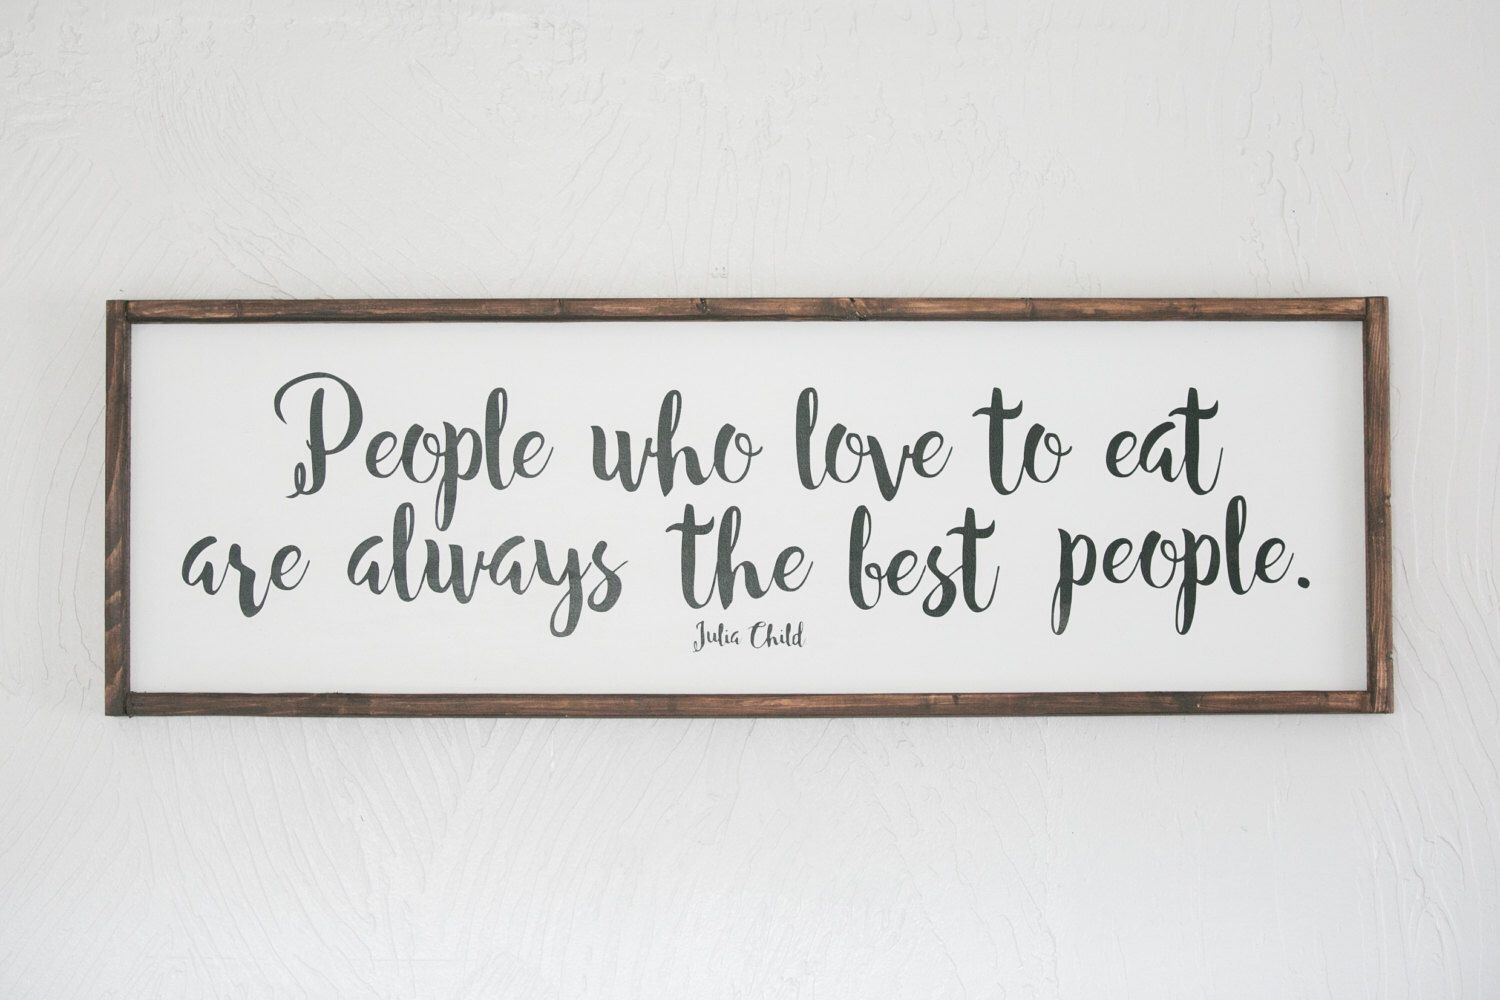 People Who Love to Eat, Julia Child, Kitchen Decor, Wood Sign, Home ...